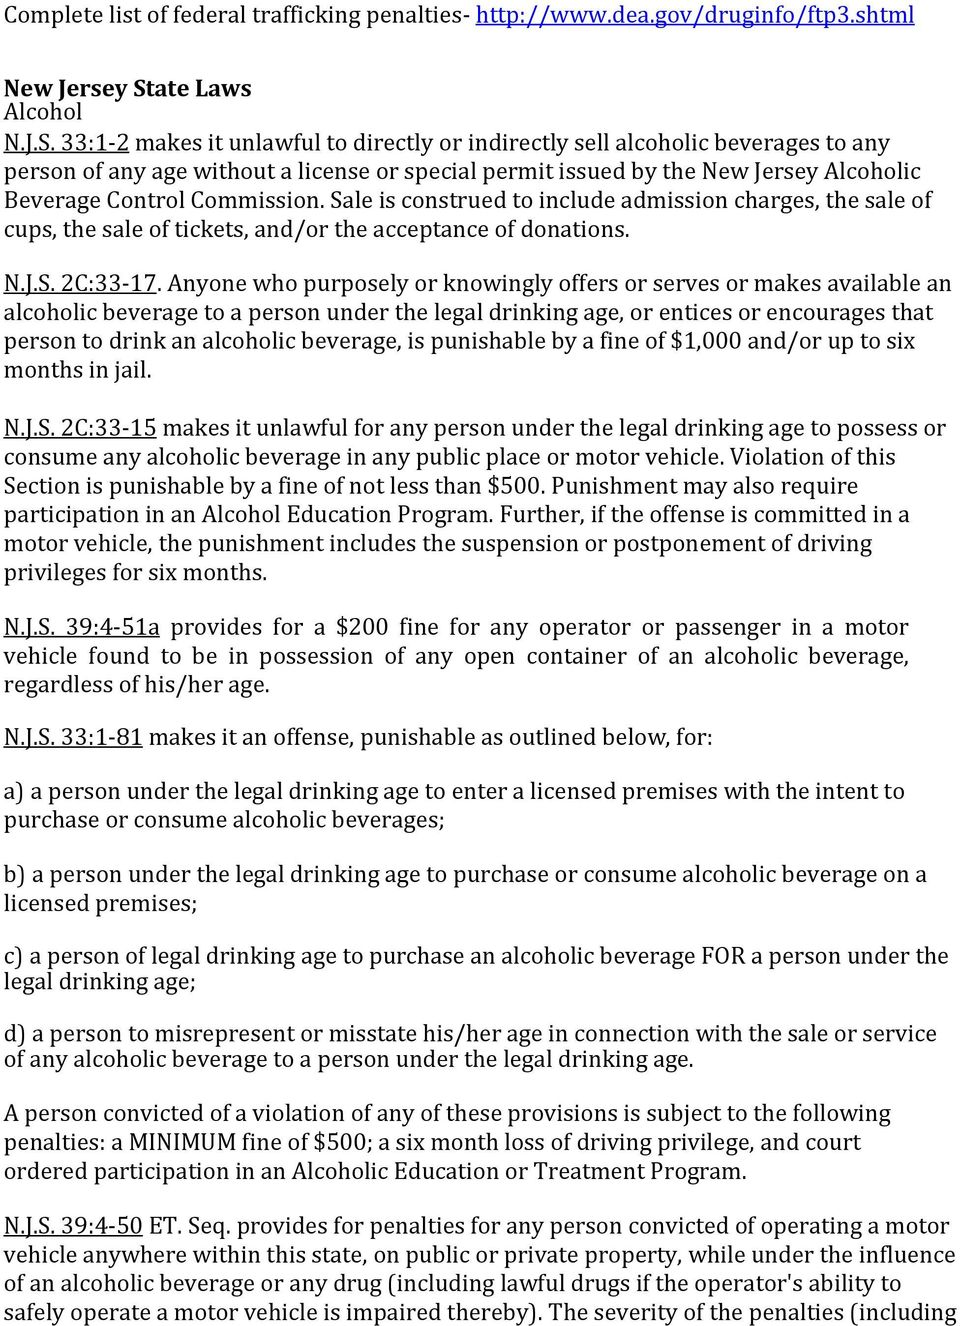 33:1-2 makes it unlawful to directly or indirectly sell alcoholic beverages to any person of any age without a license or special permit issued by the New Jersey Alcoholic Beverage Control Commission.